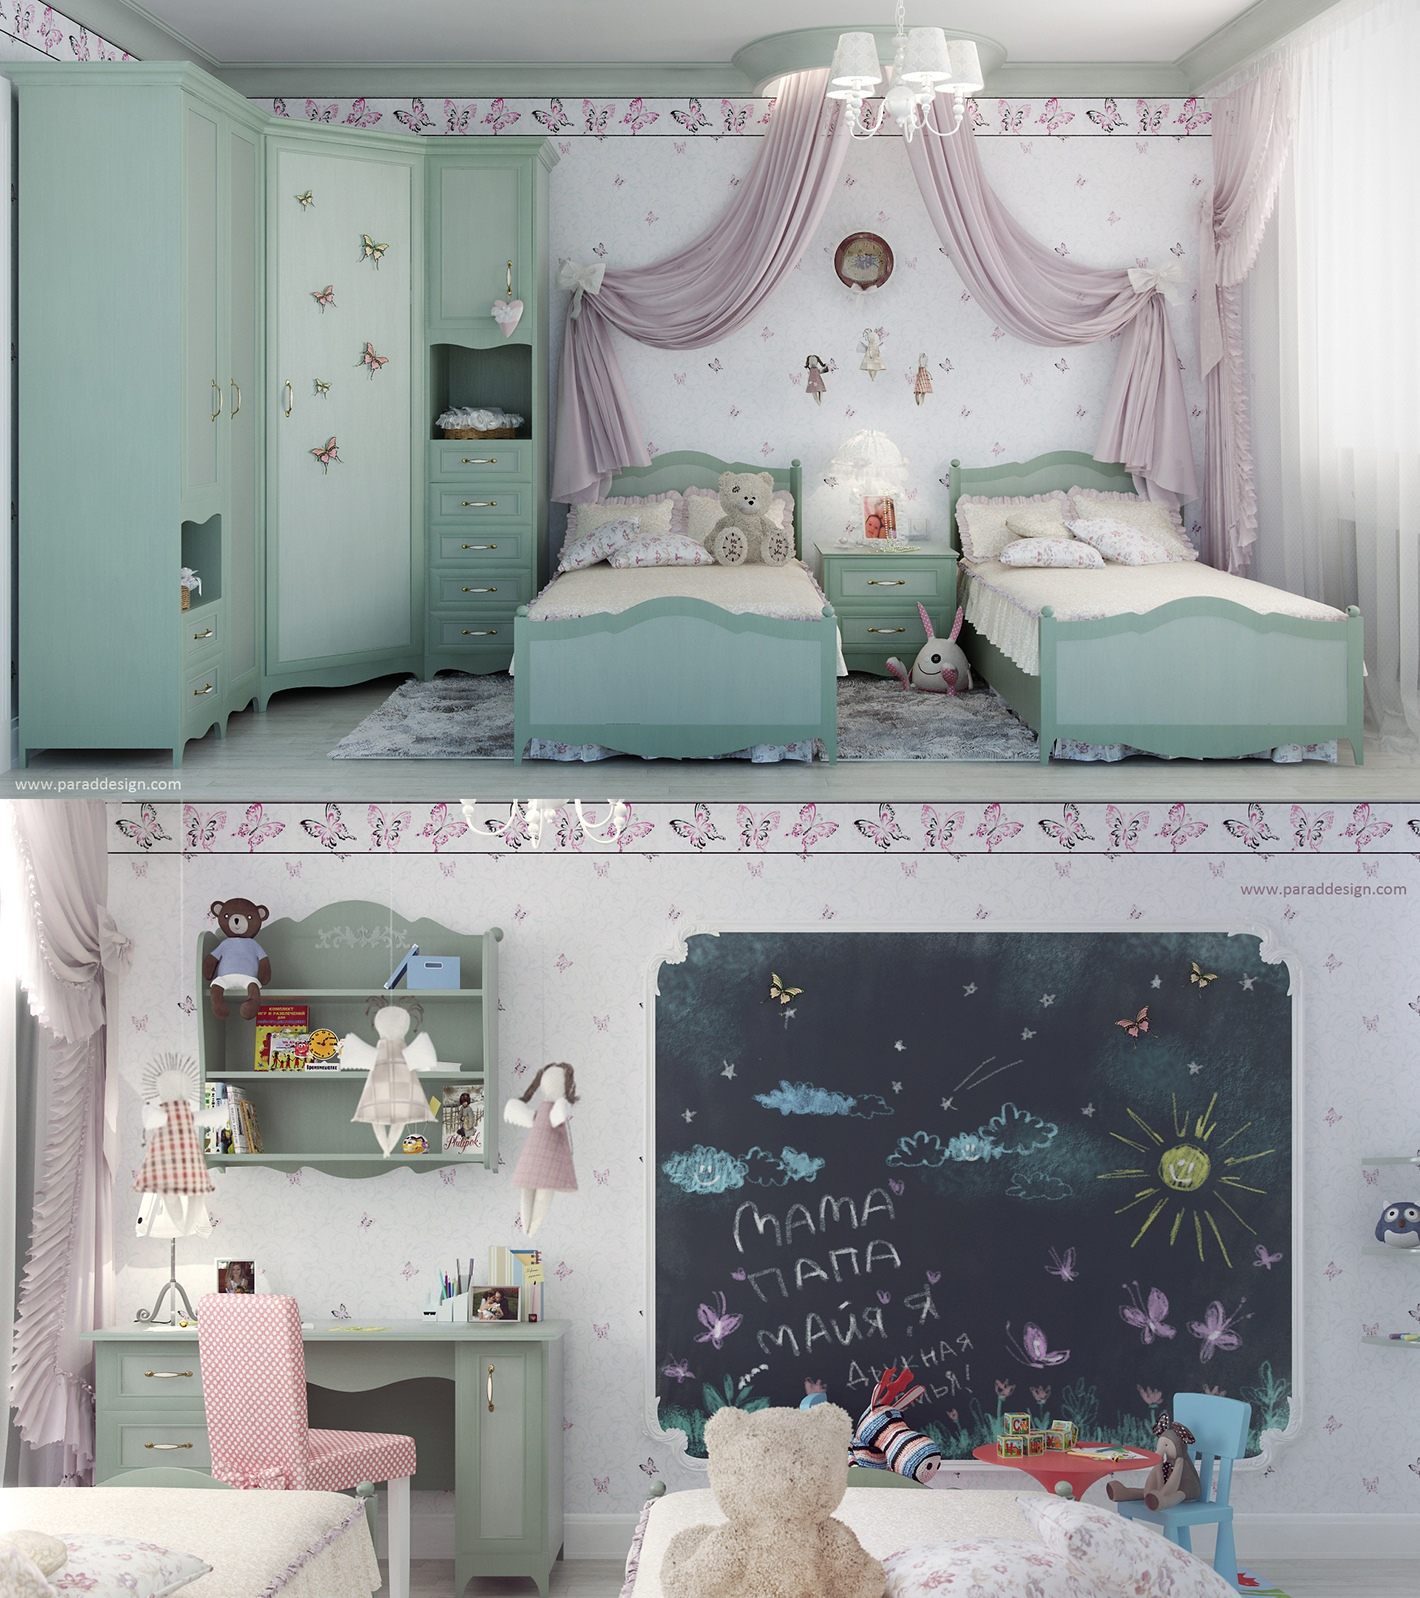 this is a formal bedroom for two young girls with twin beds and a